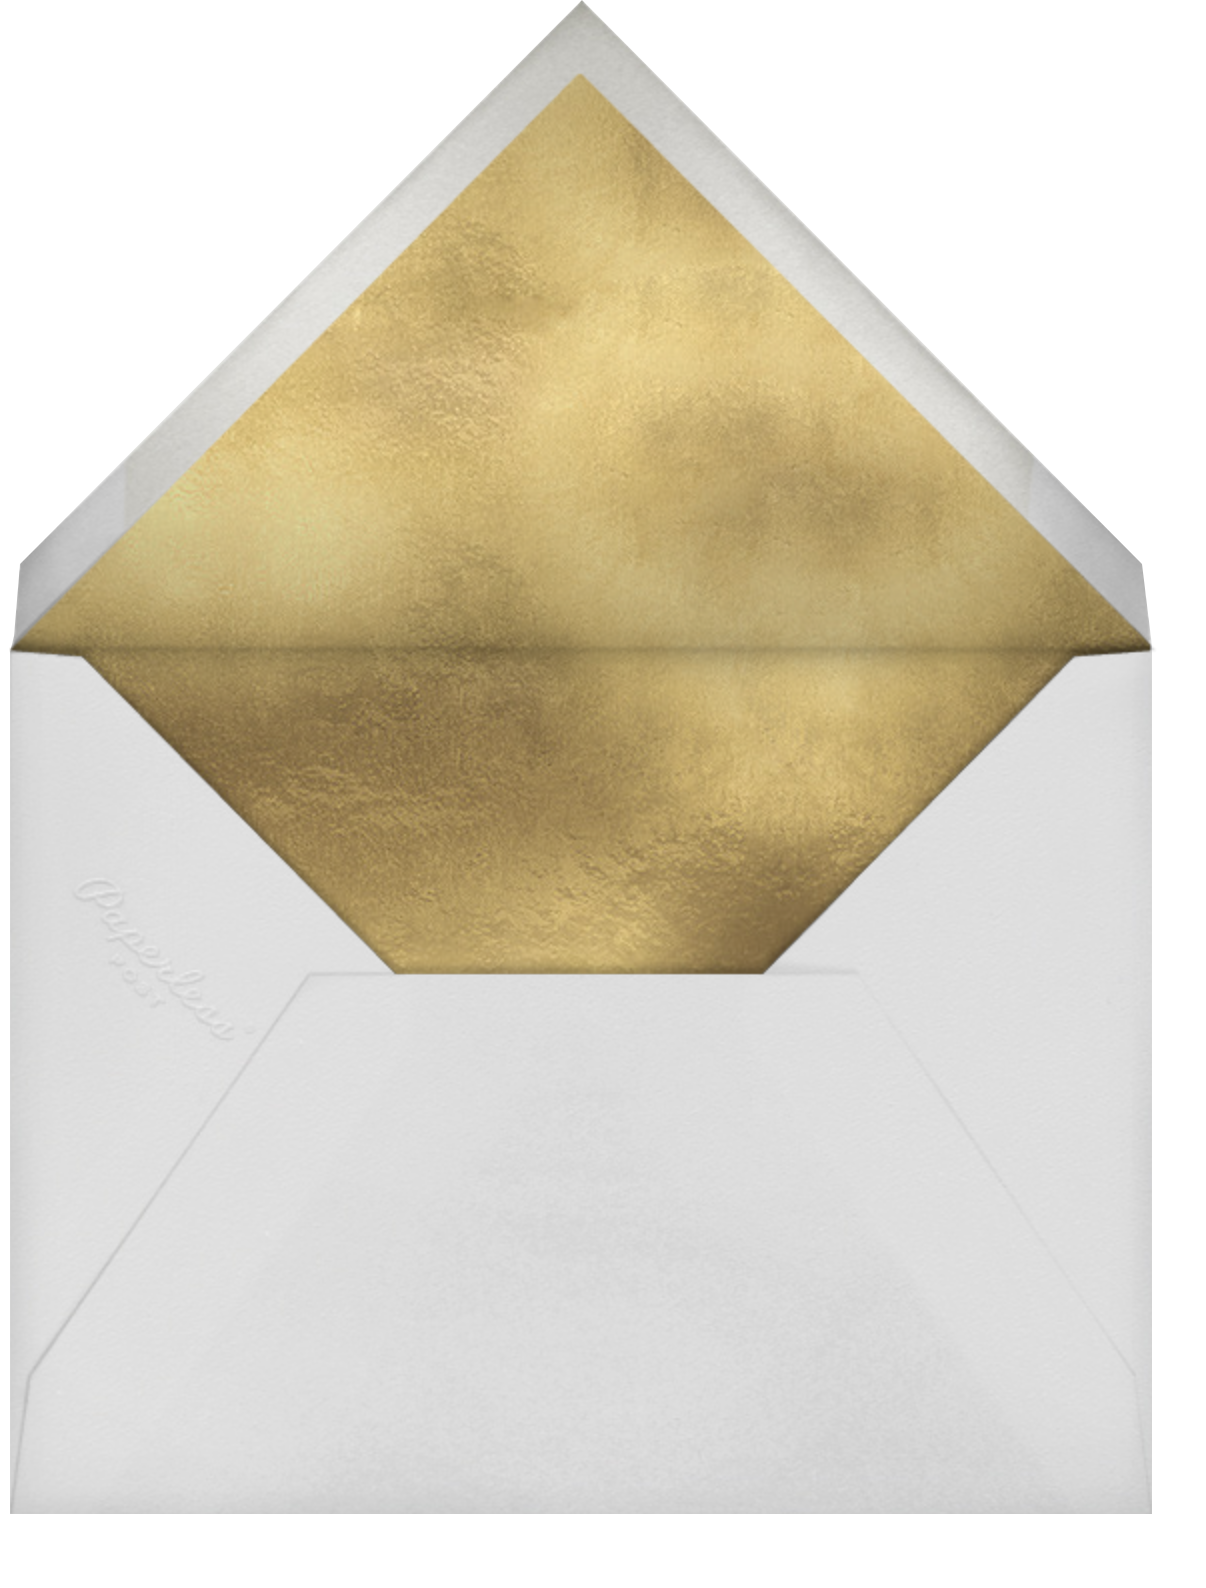 Laguna - Jonathan Adler - Reception - envelope back